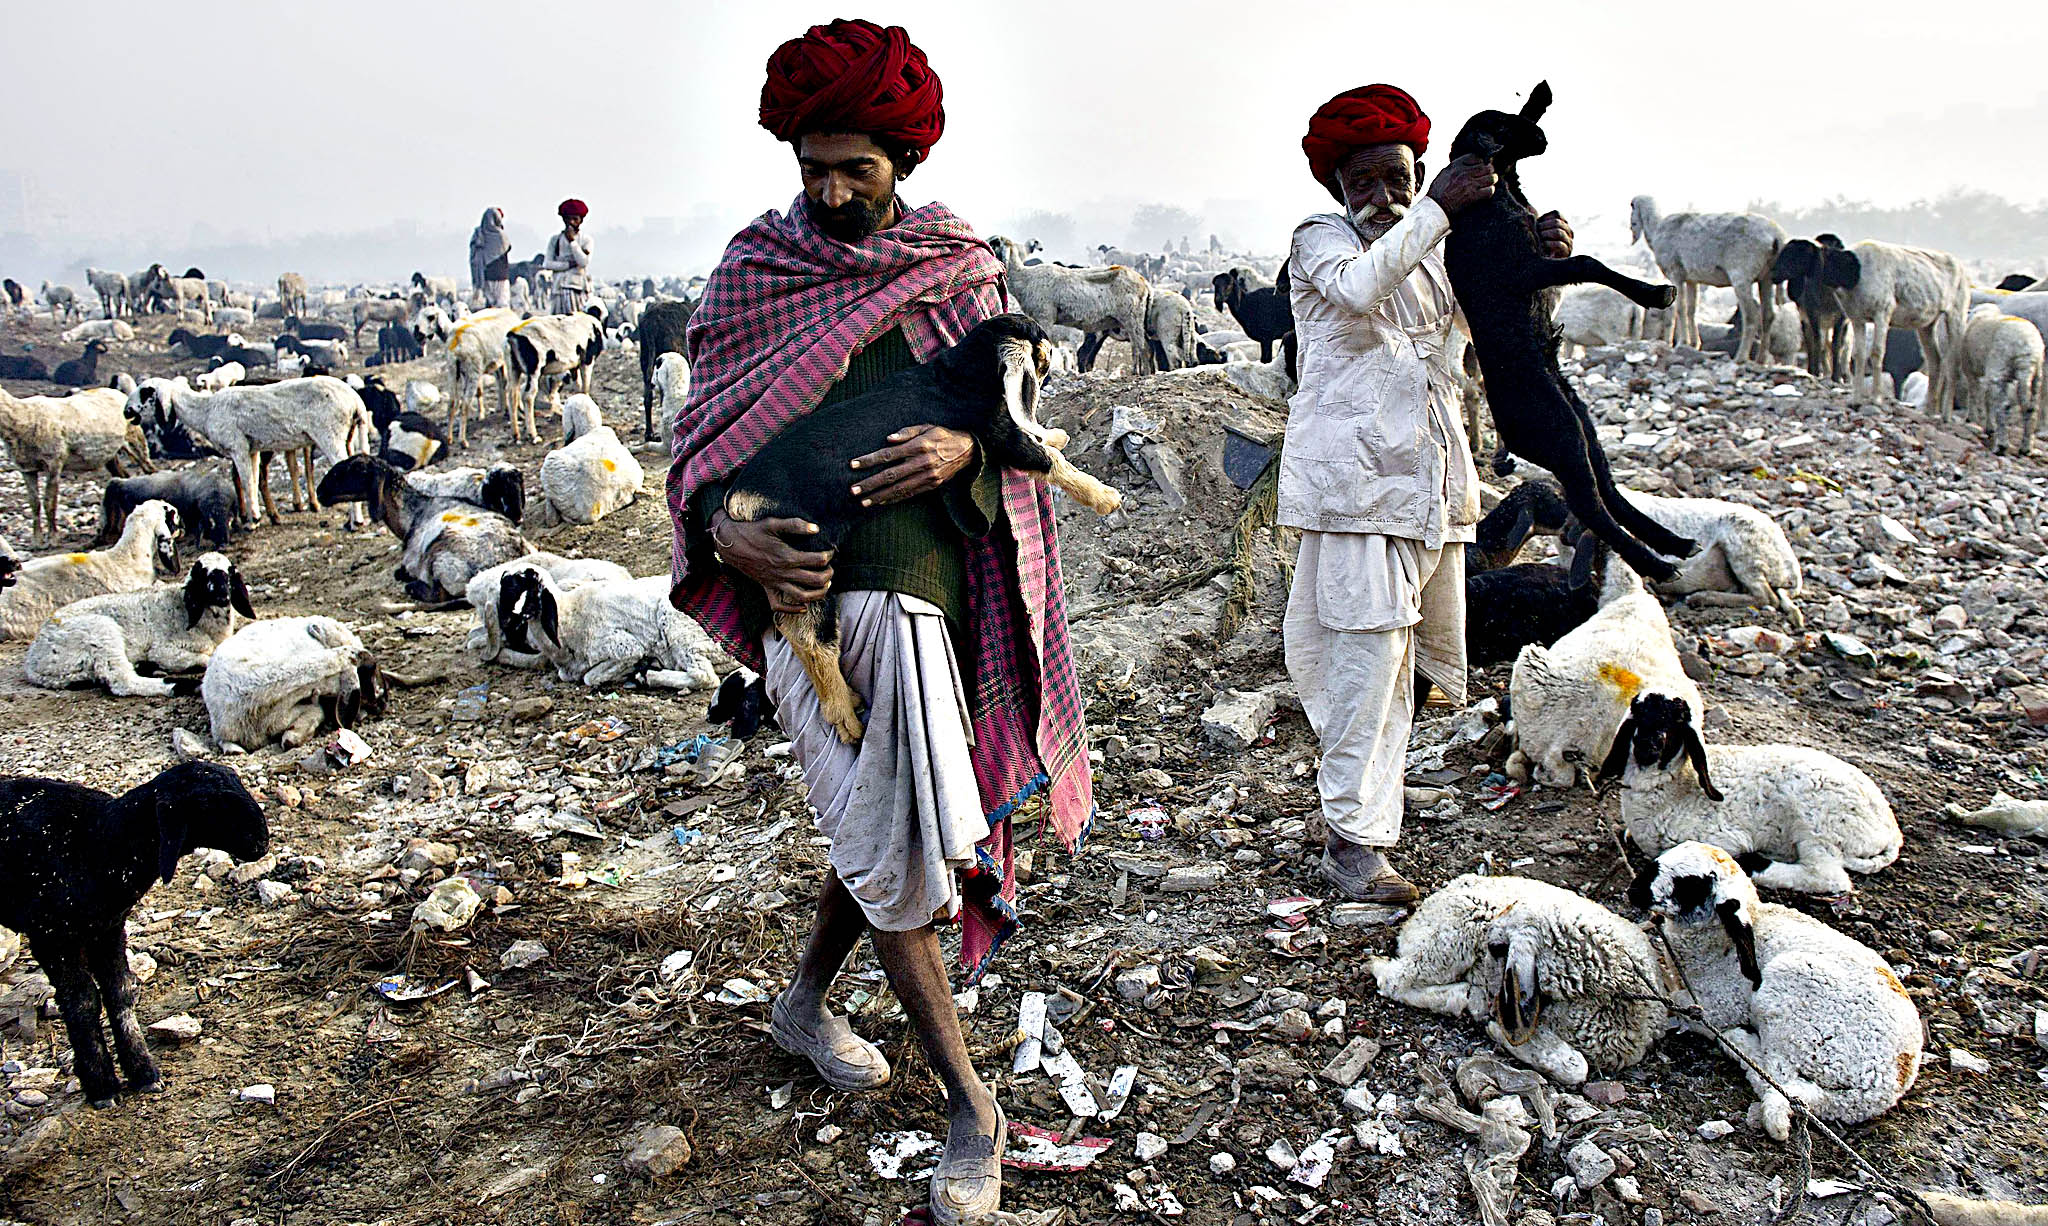 Nomadic shepherds from Rajasthan herd their sheep at a camp on the outskirts of New Delhi on December 9, 2013. These shepherds still cling on to pastoral nomadic life, trekking long distances in search of pasture for their sheep.